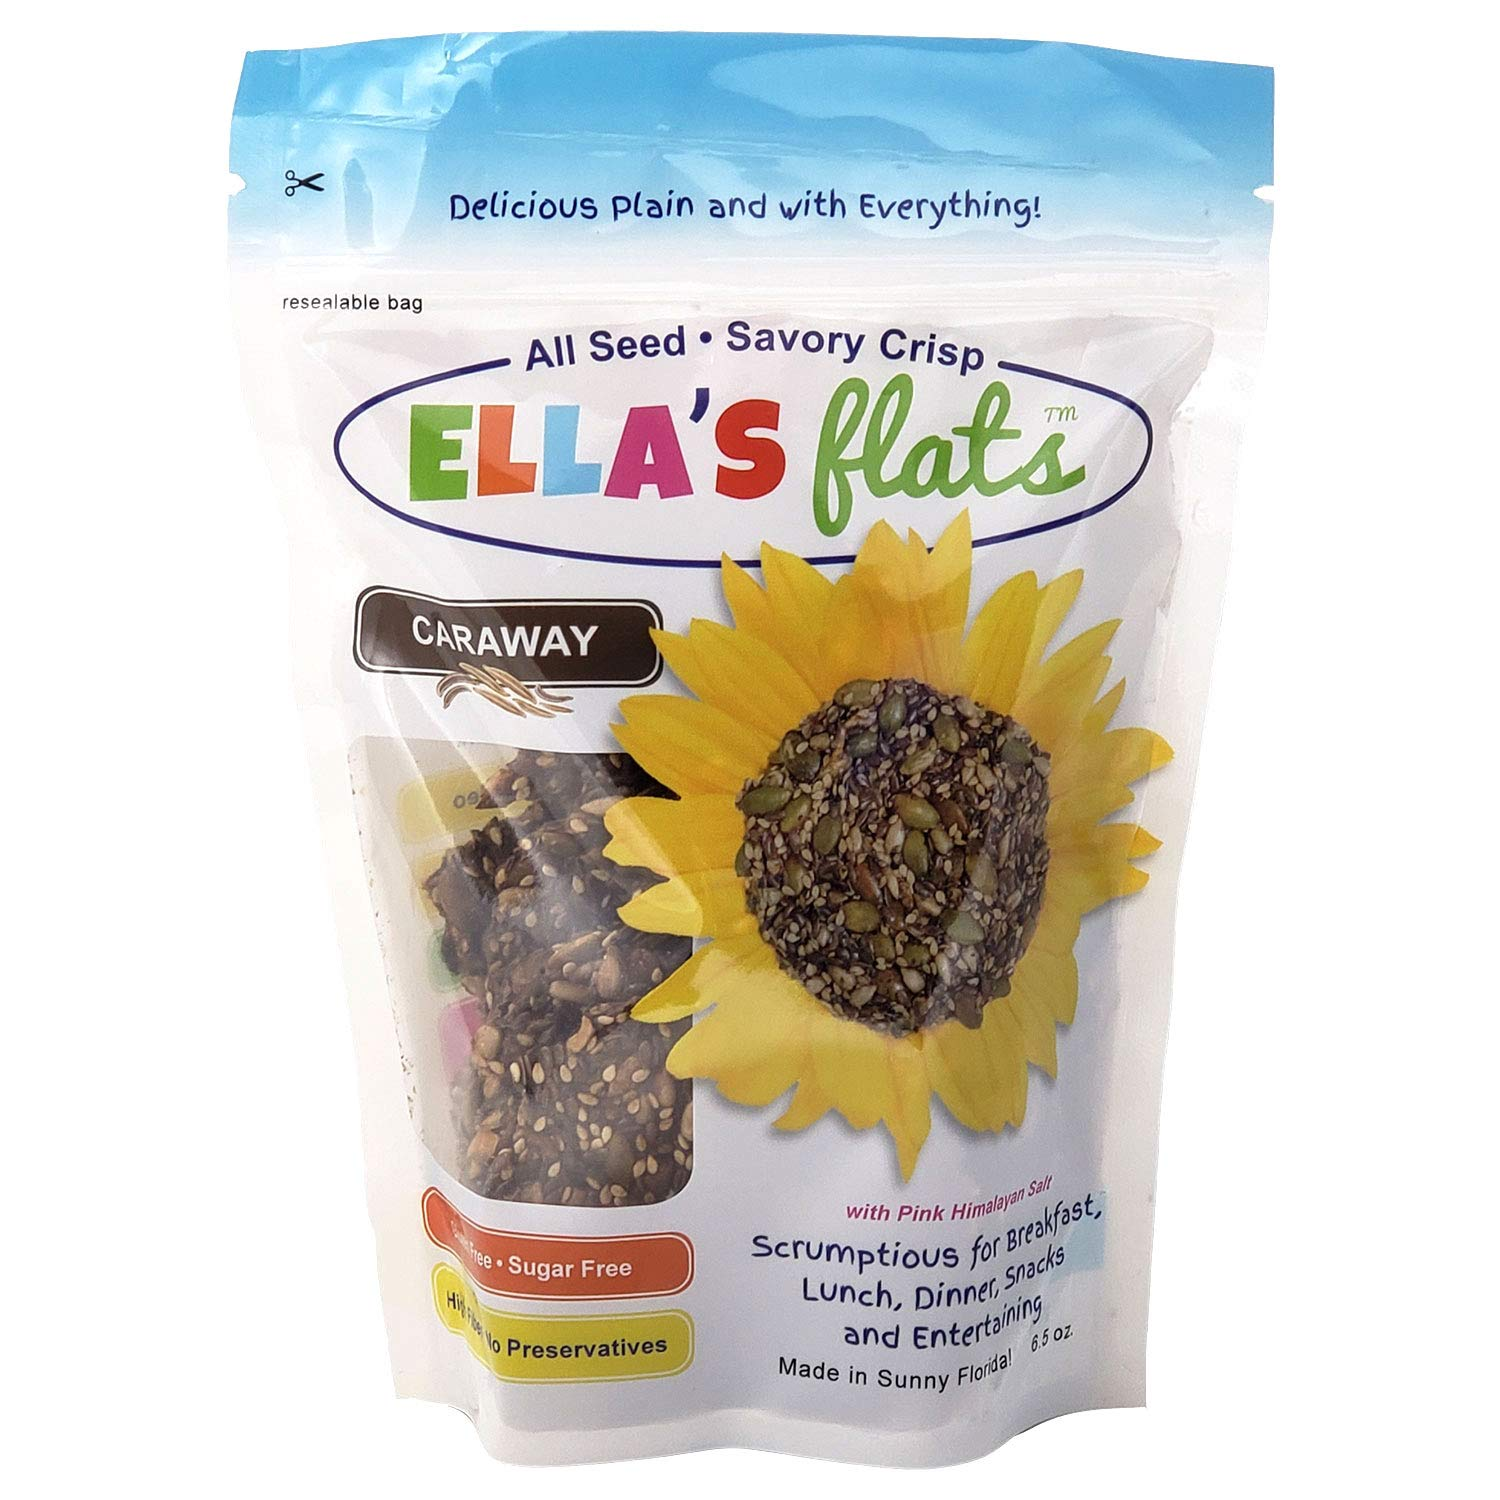 ELLA'S FLATS All Seed Savory Crisps - CARAWAY (6.5oz Resealable Bag) - 3 PACK - Gluten Free, Sugar Free, Grain Free, High Fiber, Low Carb, Vegan, Keto, Paleo